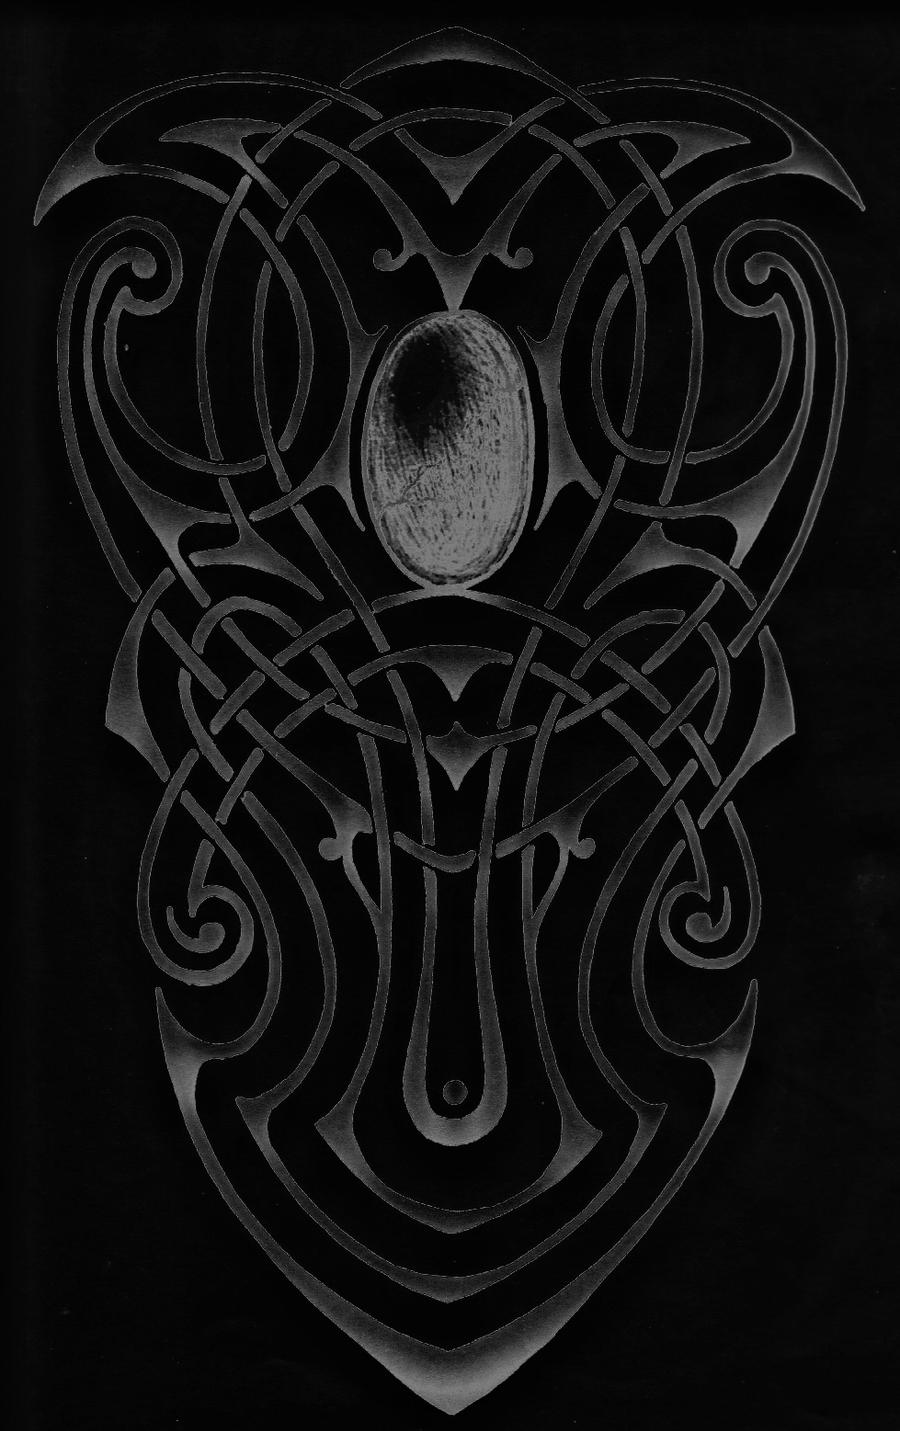 celtic viking tattoo 2 solrizd tattoo addicted. Black Bedroom Furniture Sets. Home Design Ideas